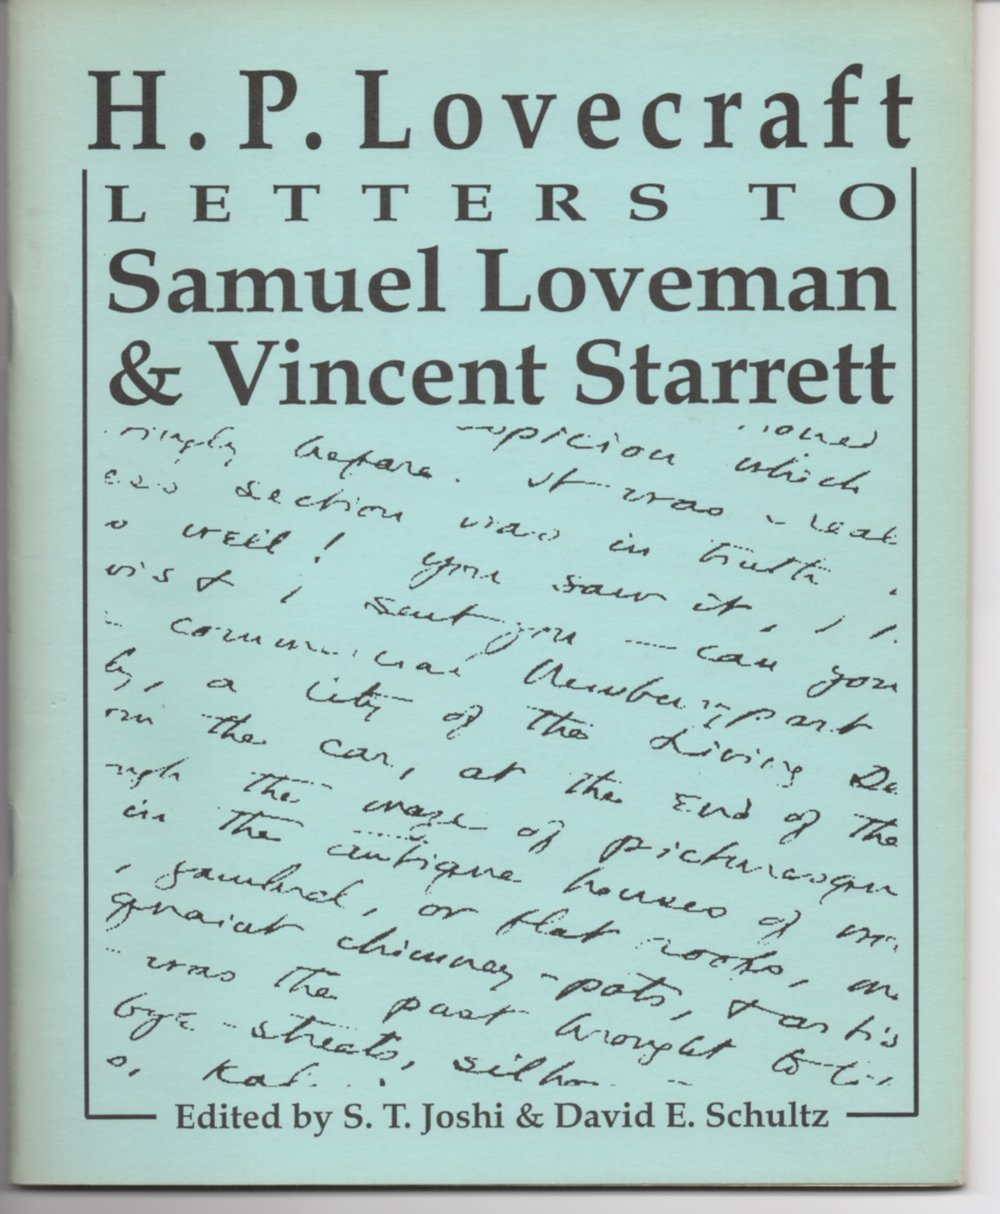 Almost forgot: Some of Lovecraft's letters to Loveman and Starrett were collected into this little booklet back in the 1994 by the  Necronomicon Press.